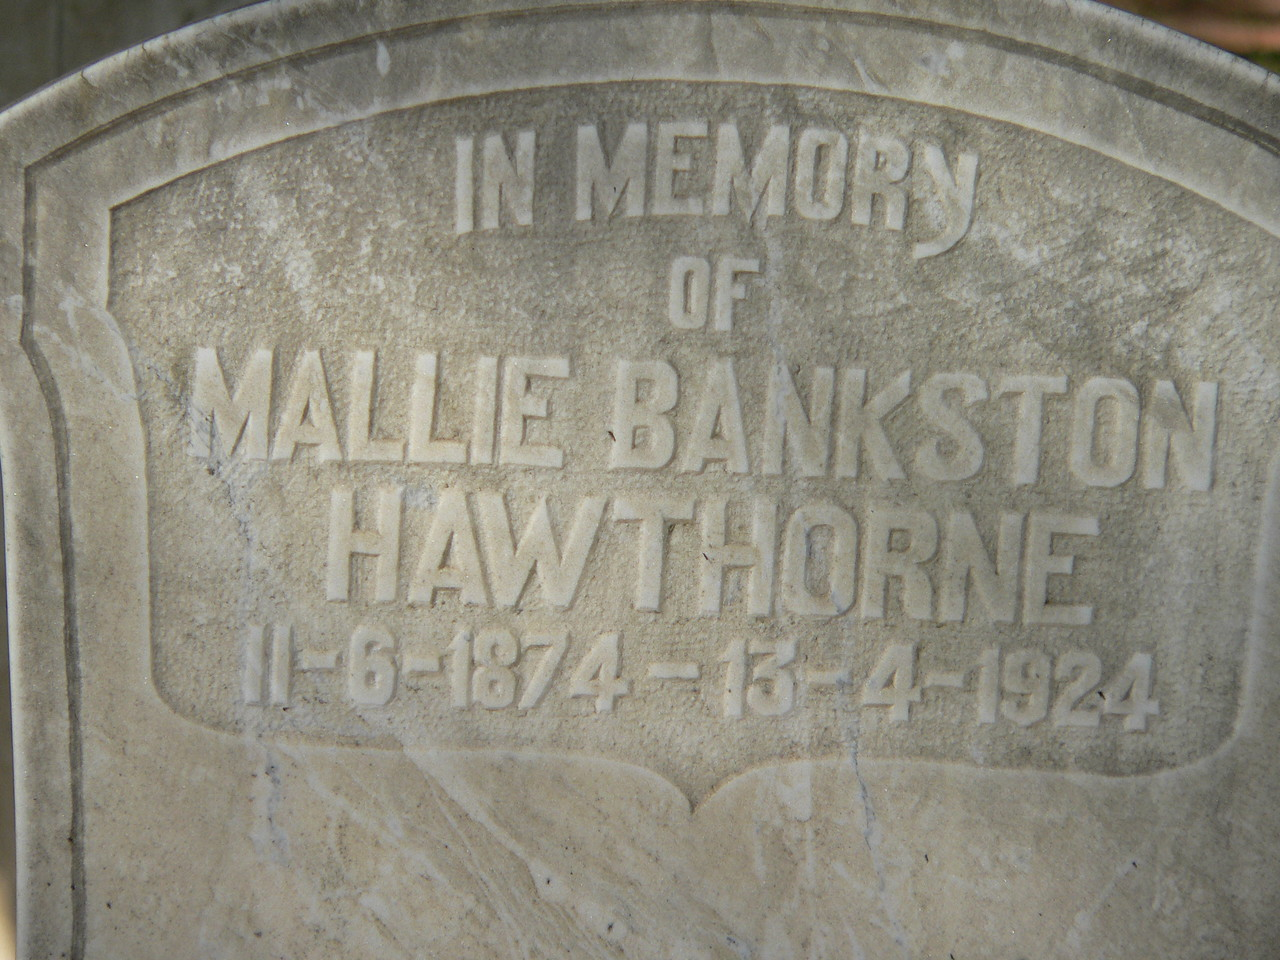 Mallie Bankston Hawthorne (1874-1924)